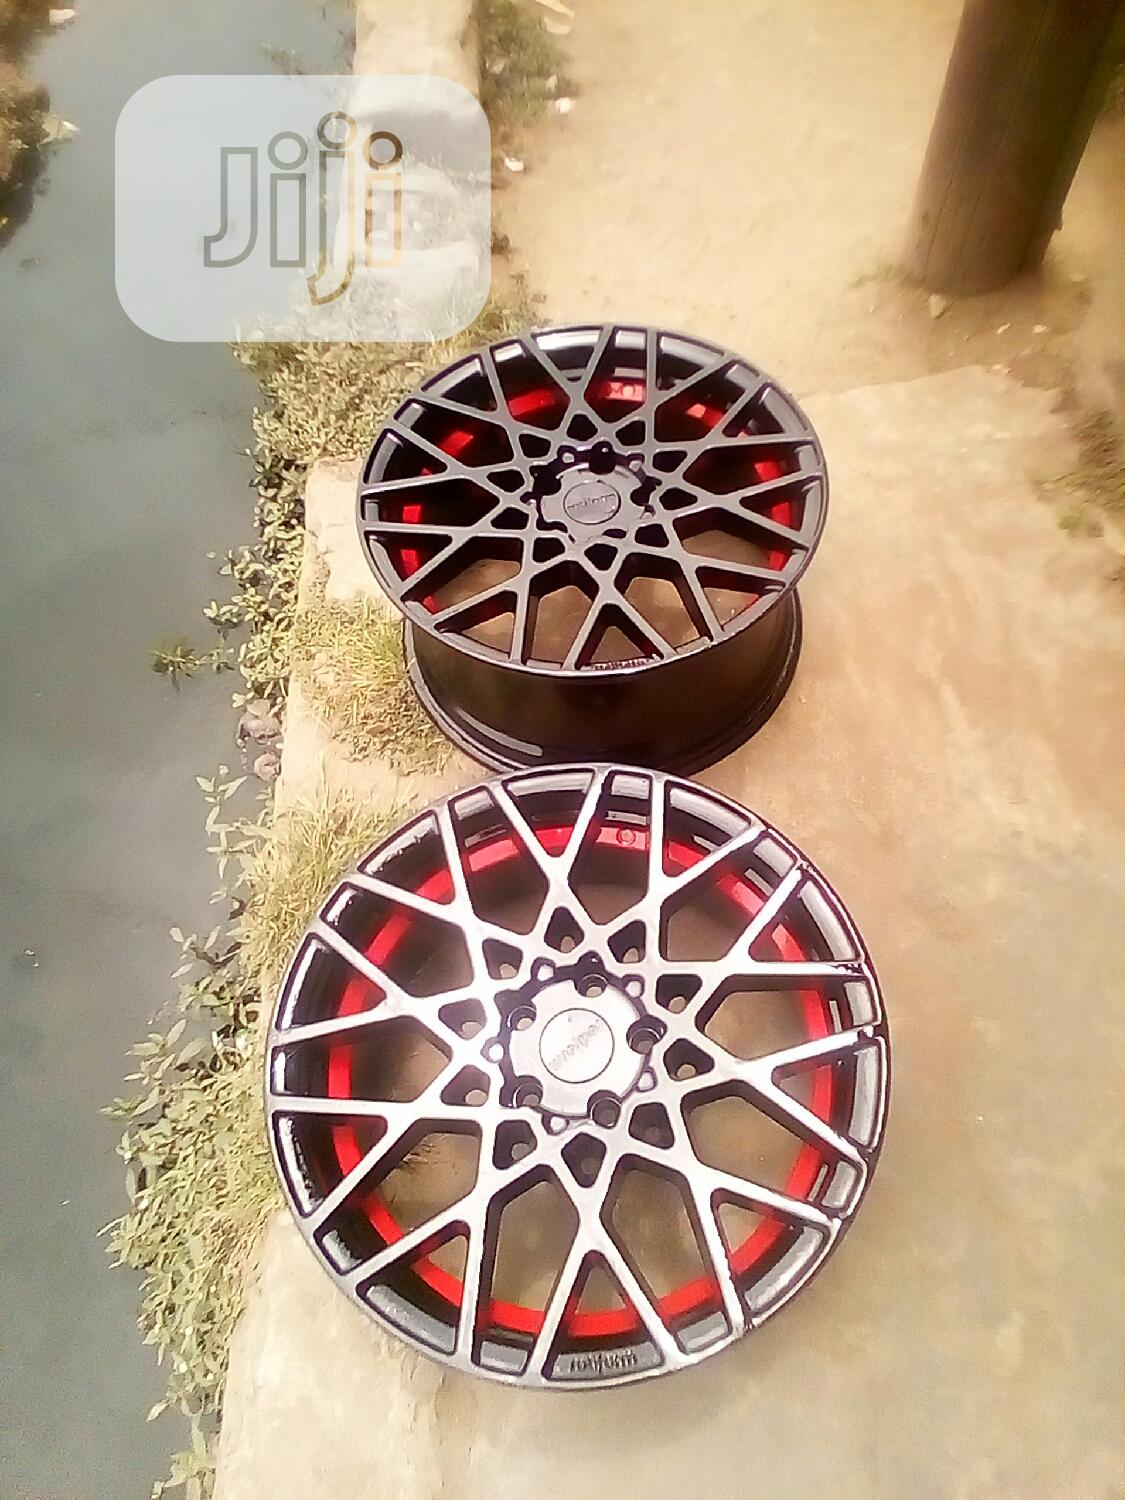 18 Rim For Toyota Honda Lexus Nissan | Vehicle Parts & Accessories for sale in Mushin, Lagos State, Nigeria